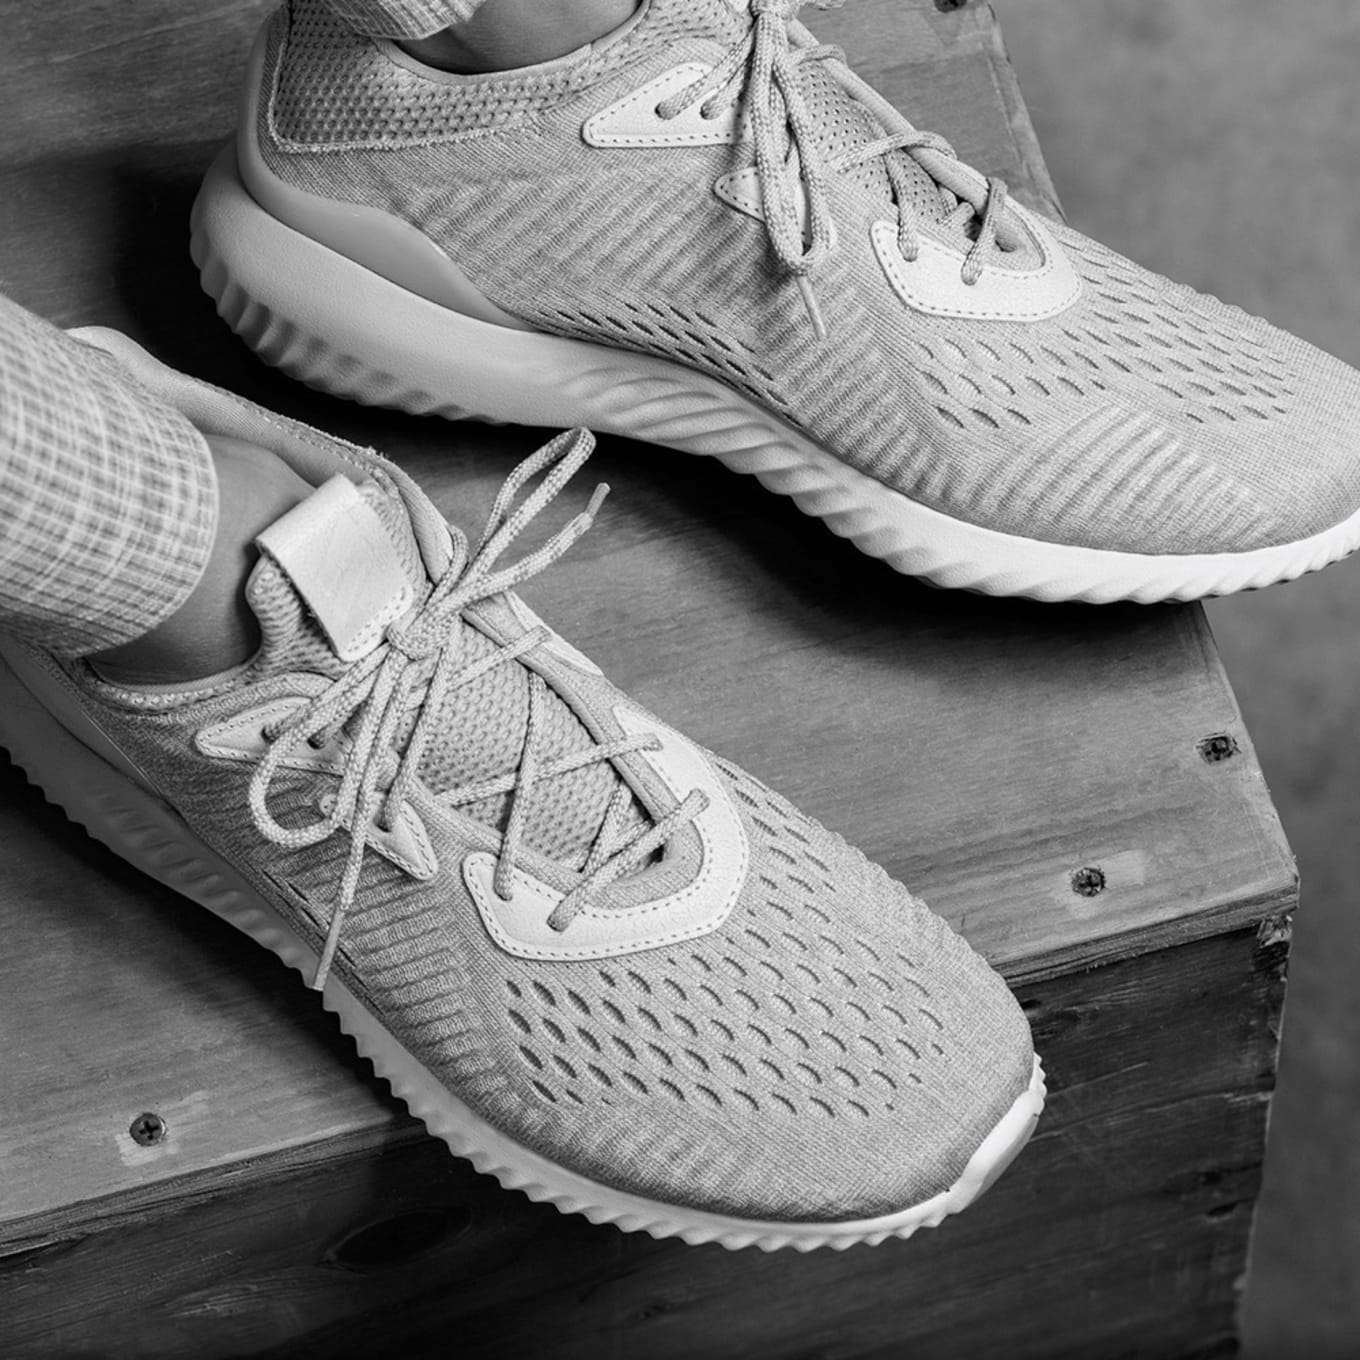 Adidas x Reigning Champ AlphaBounce & PureBoost Release Date